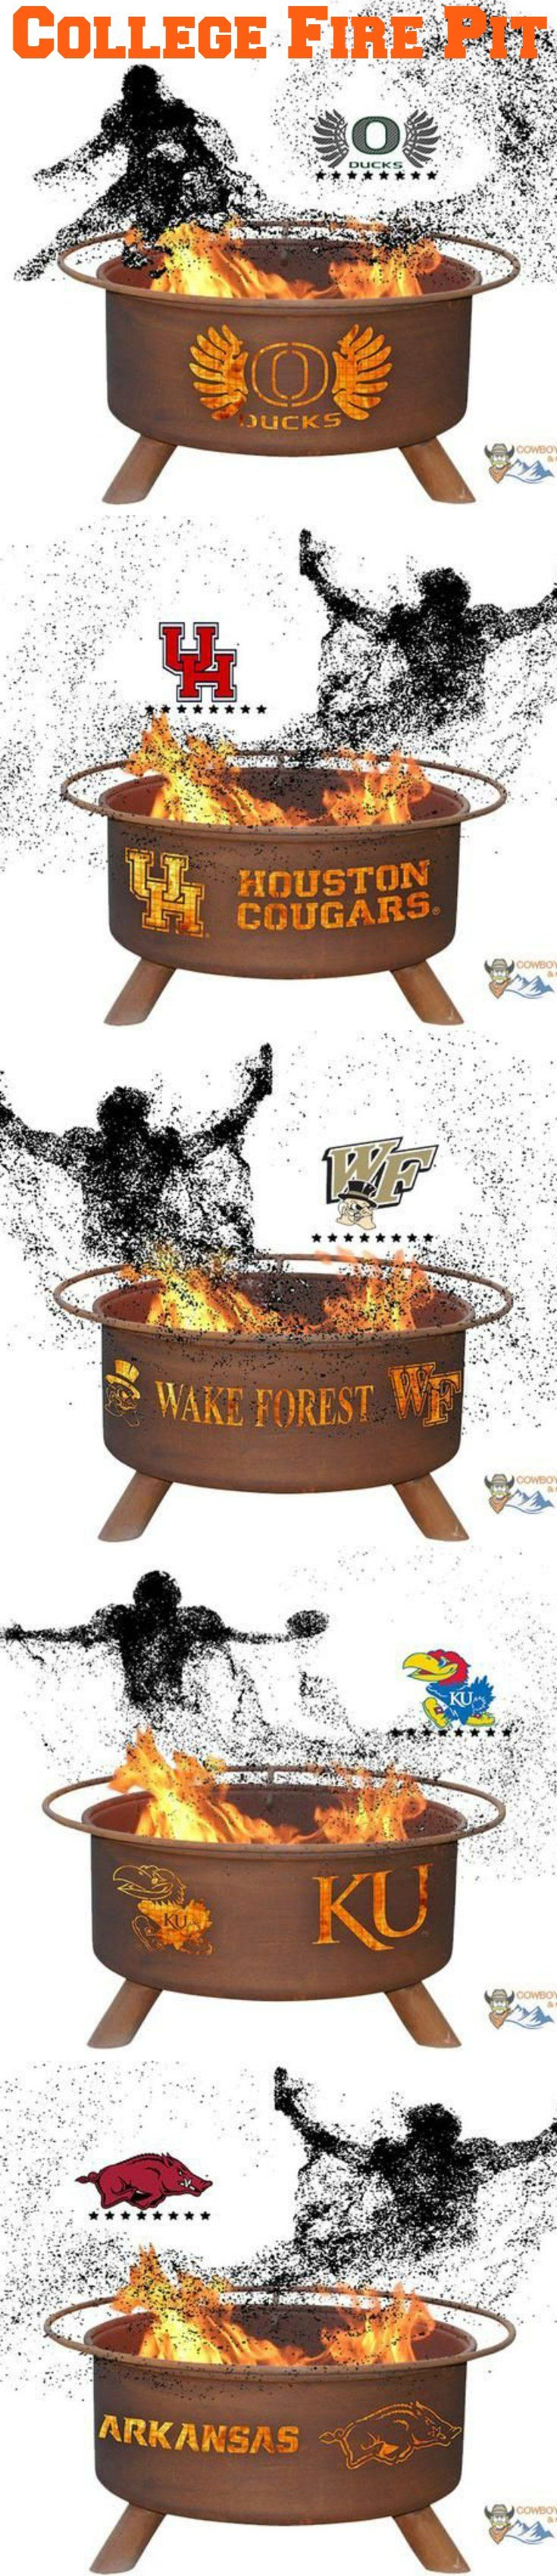 Fire Pit Show Your Pride and Entertain your Friends with the Wake Forest University Fire Pit! – College Fire Pit